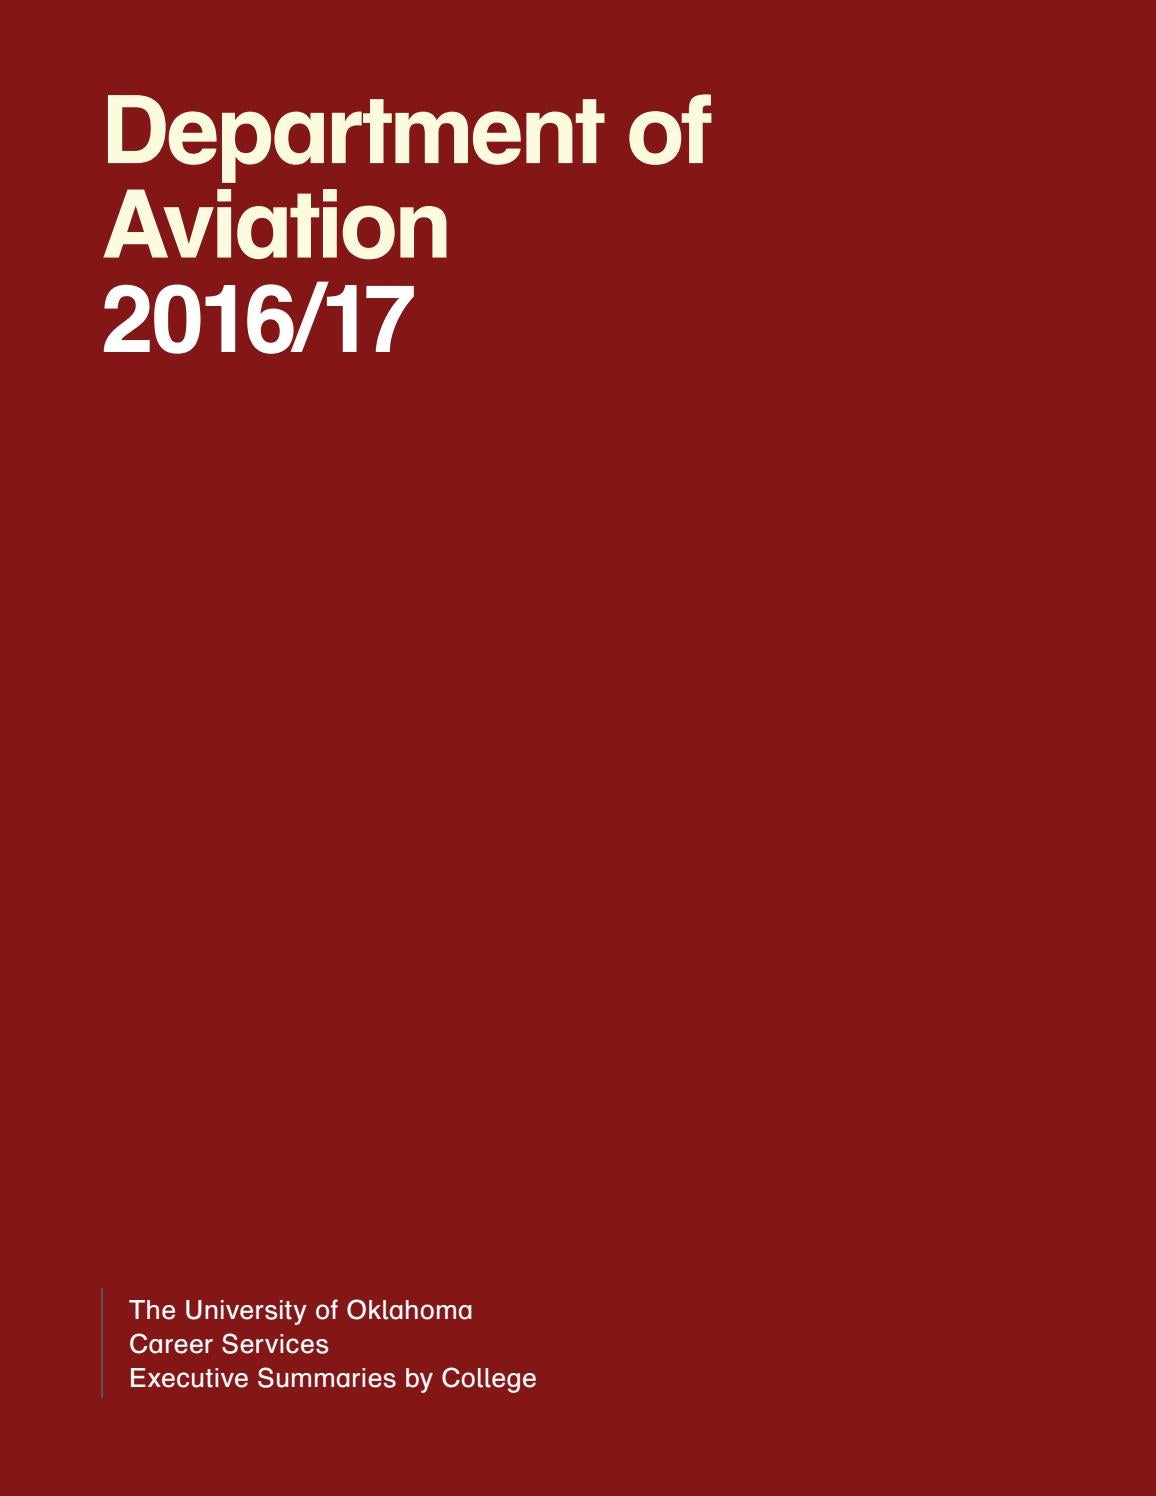 OU Career Services Department of Aviation 2016-17 Executive Summary